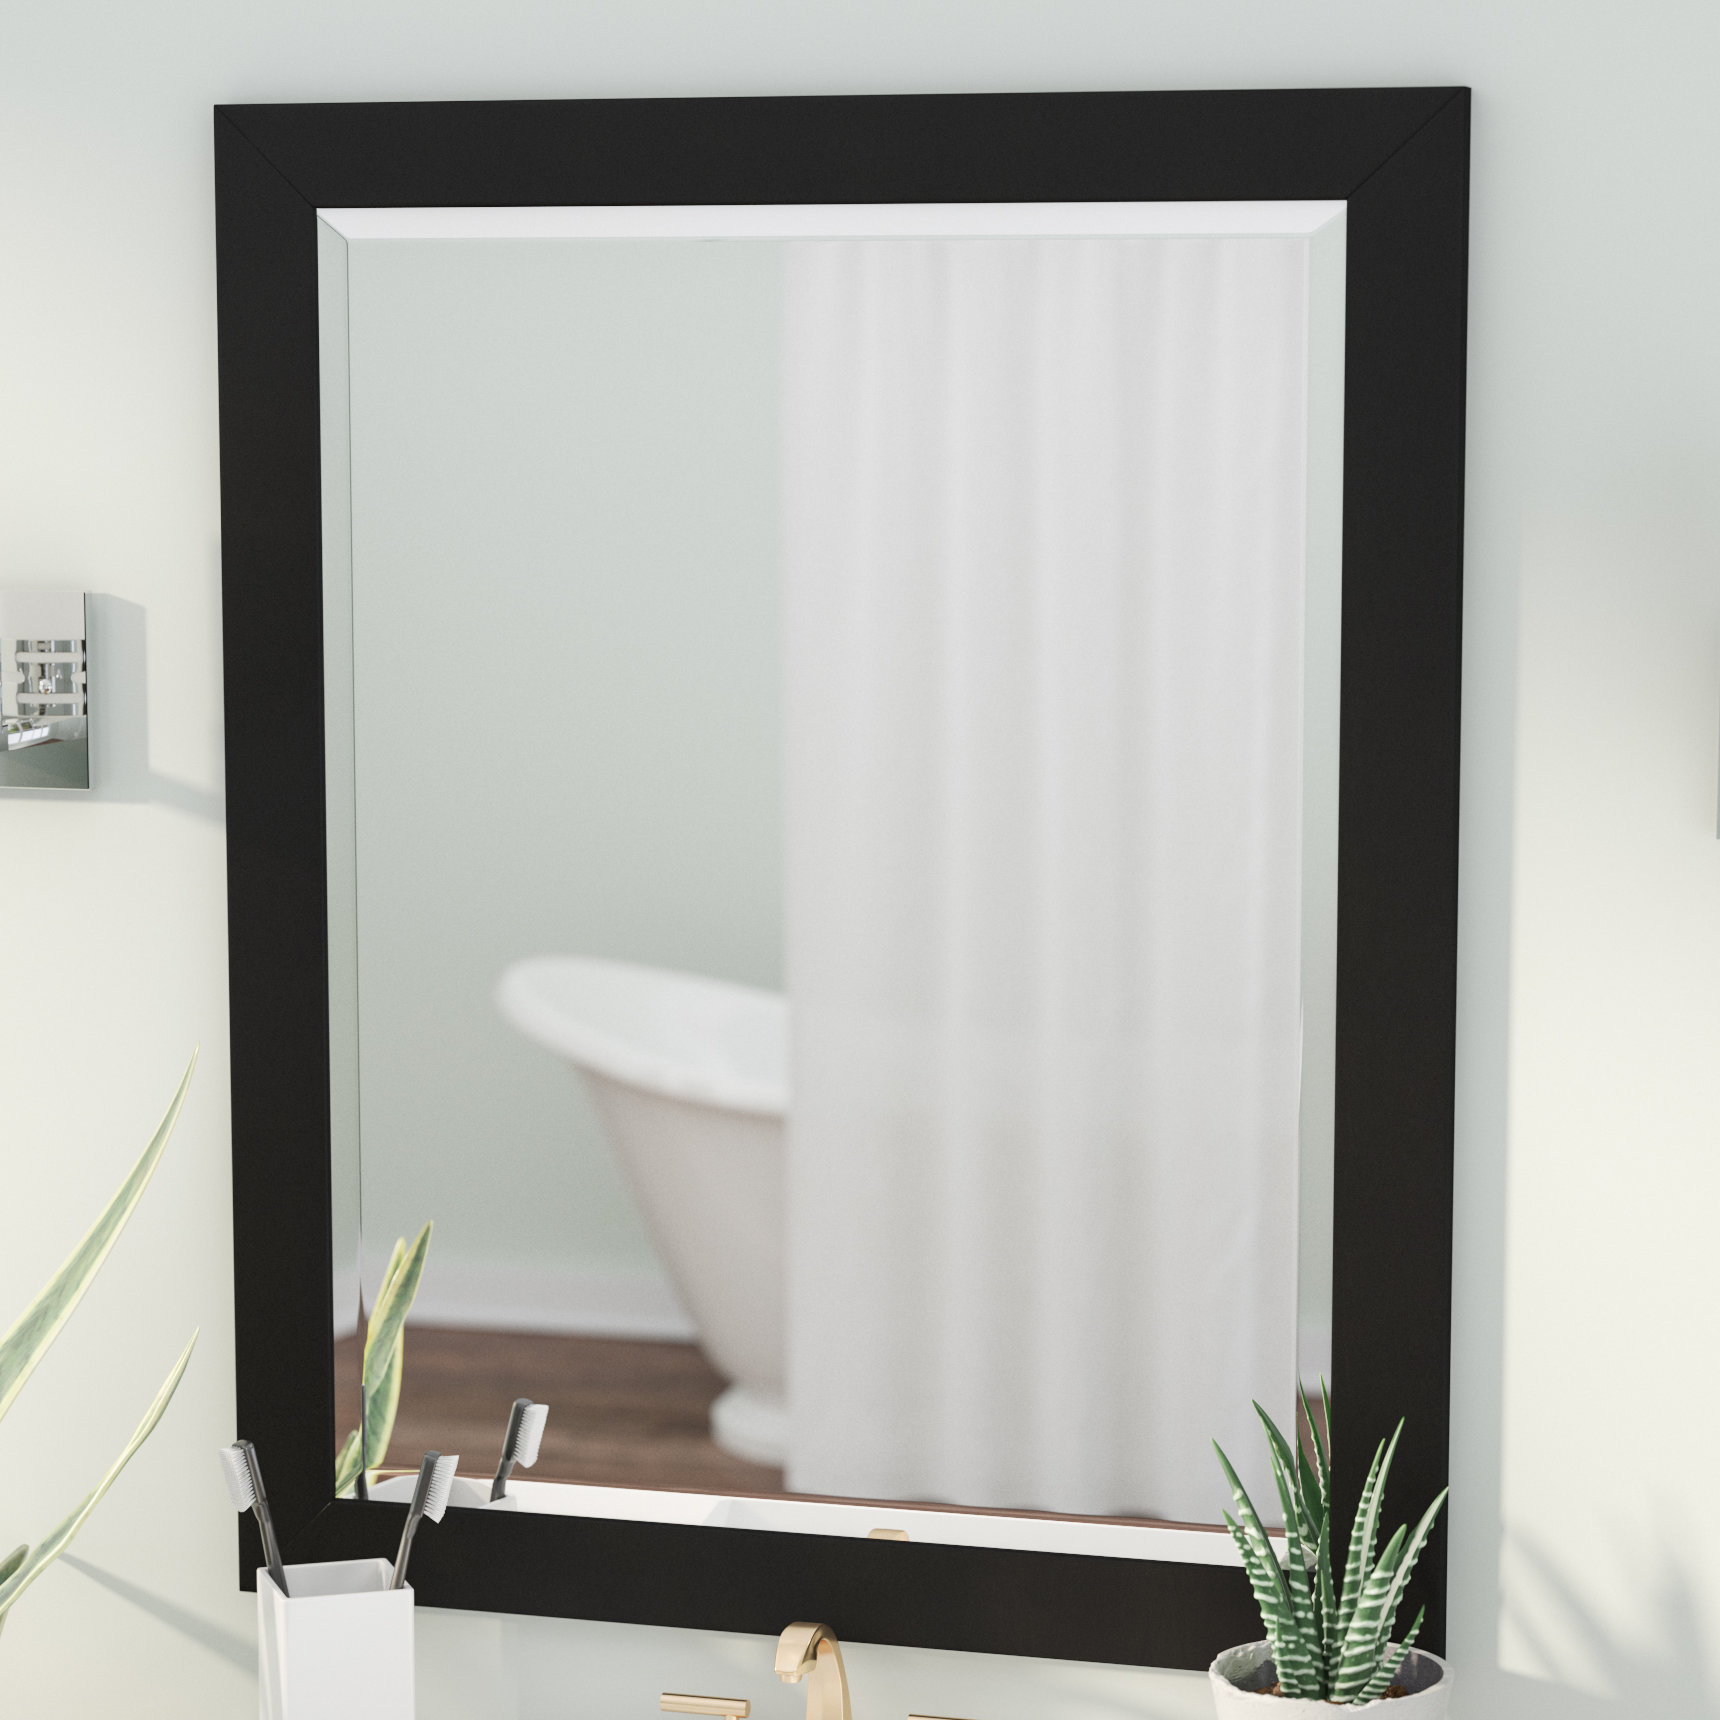 Handcrafted Beveled Vanity Wall Mirror With Regard To Most Current Vanity Wall Mirrors (Gallery 17 of 20)